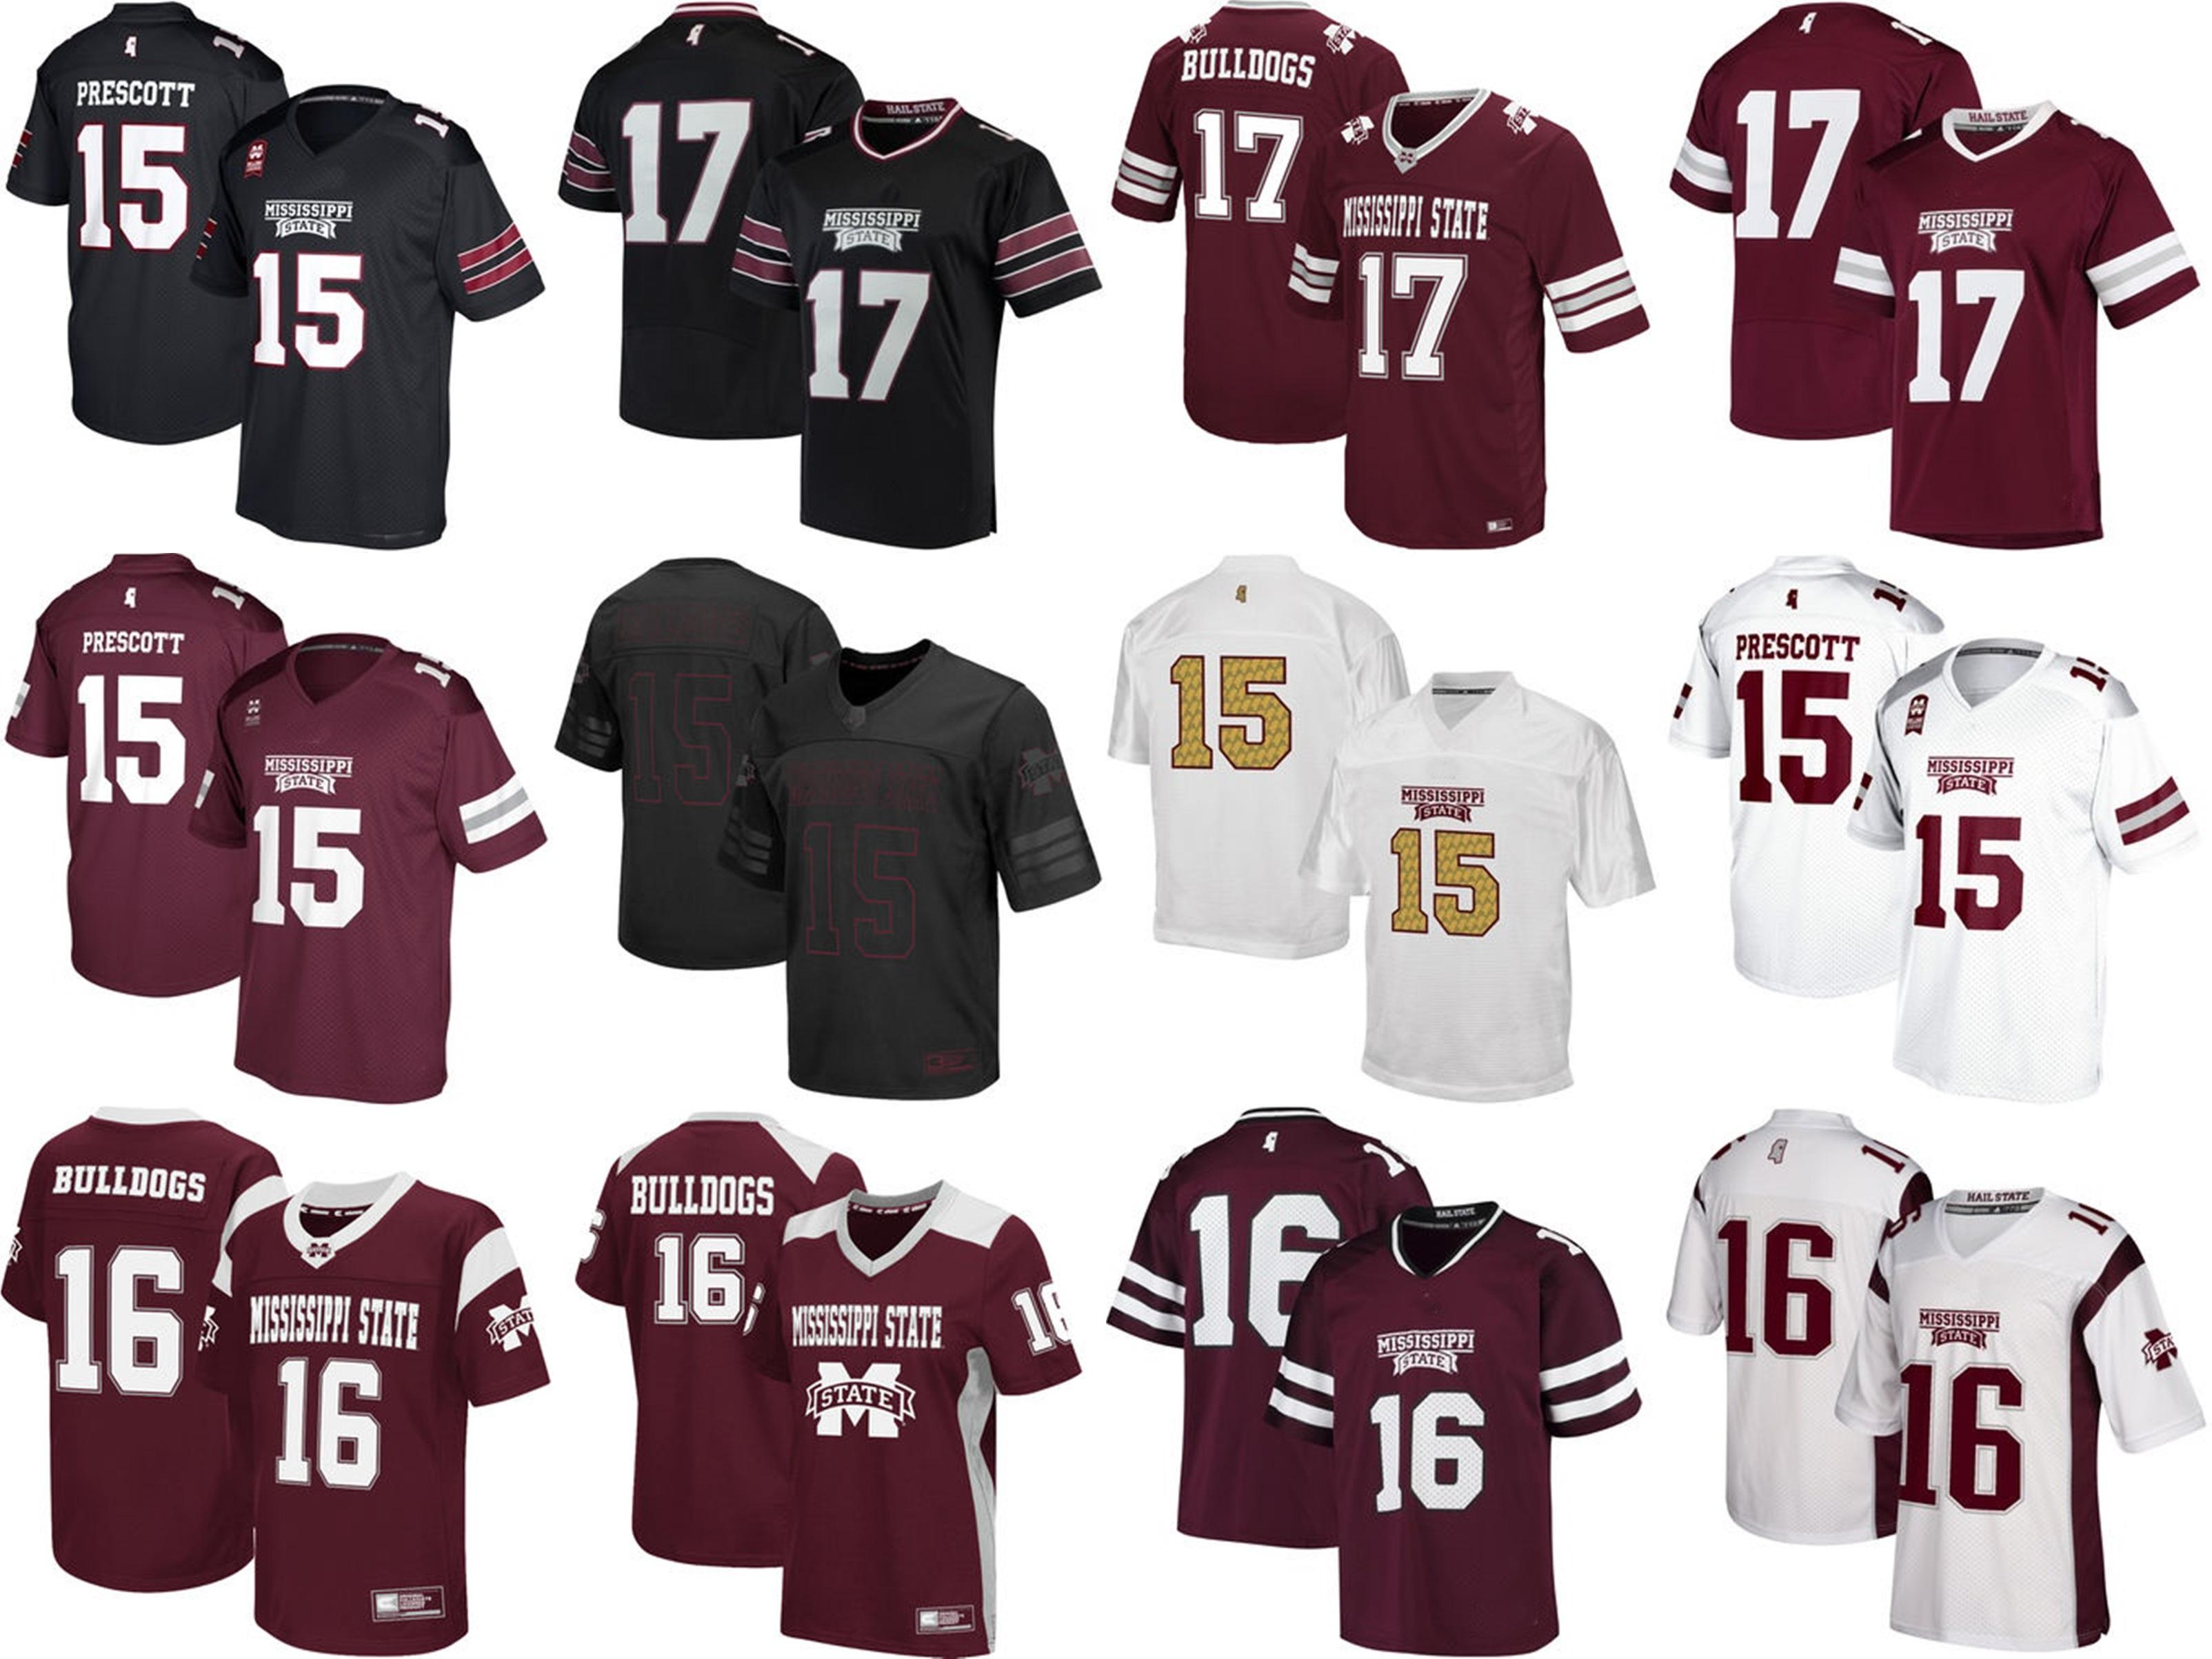 quality design 857fa 186a9 Mens Womens Kids NCAA Mississippi State Bulldogs Best quality Jersey 100%  stitched Custom Any Name Any No. College Football Jerseys